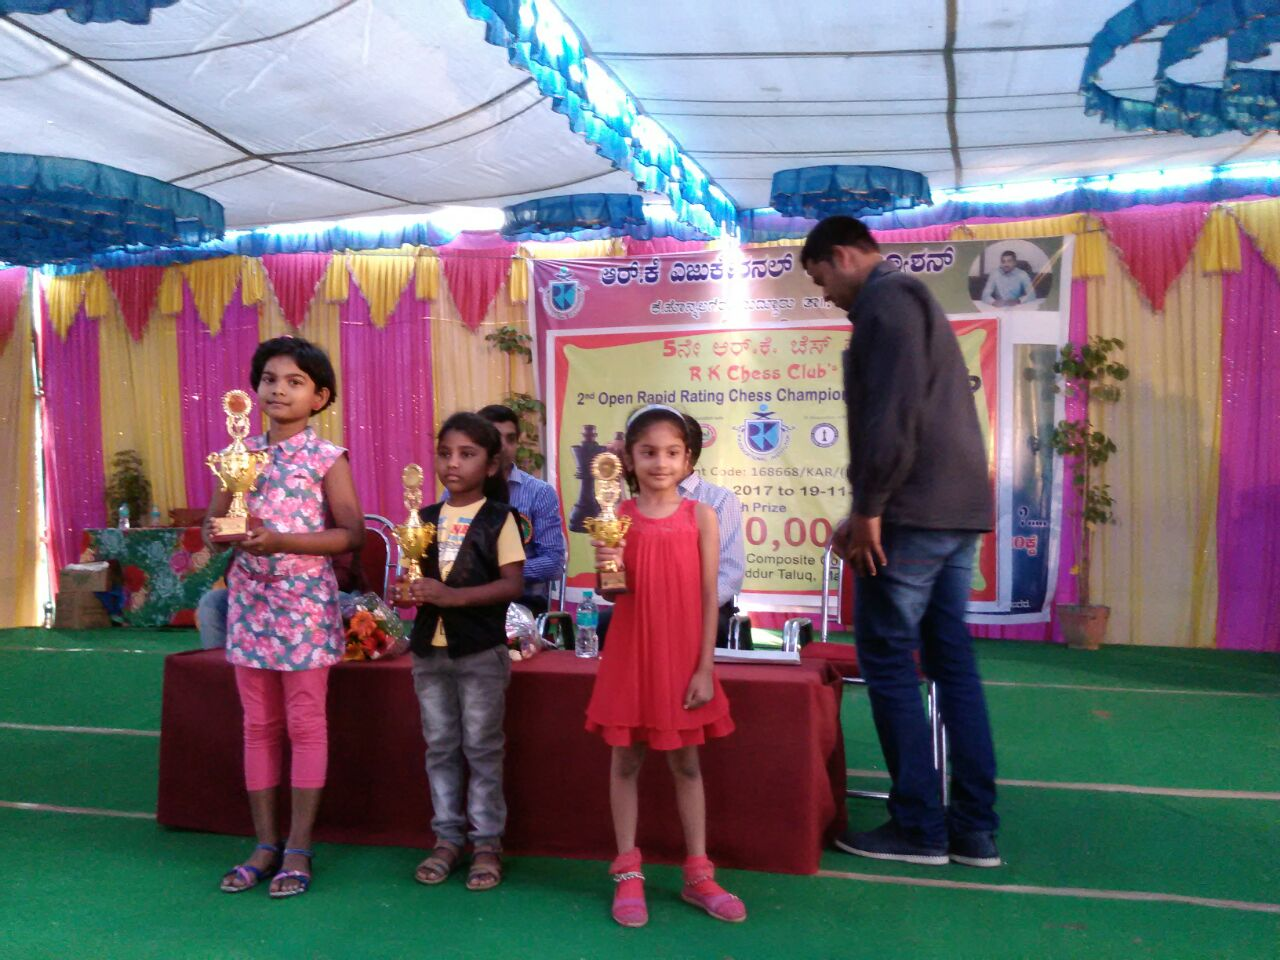 Jesslyn Jinisha places 1st in the U7 Category of the RK Chess Club's Chess Championship FIDE Rated Touranment 2017